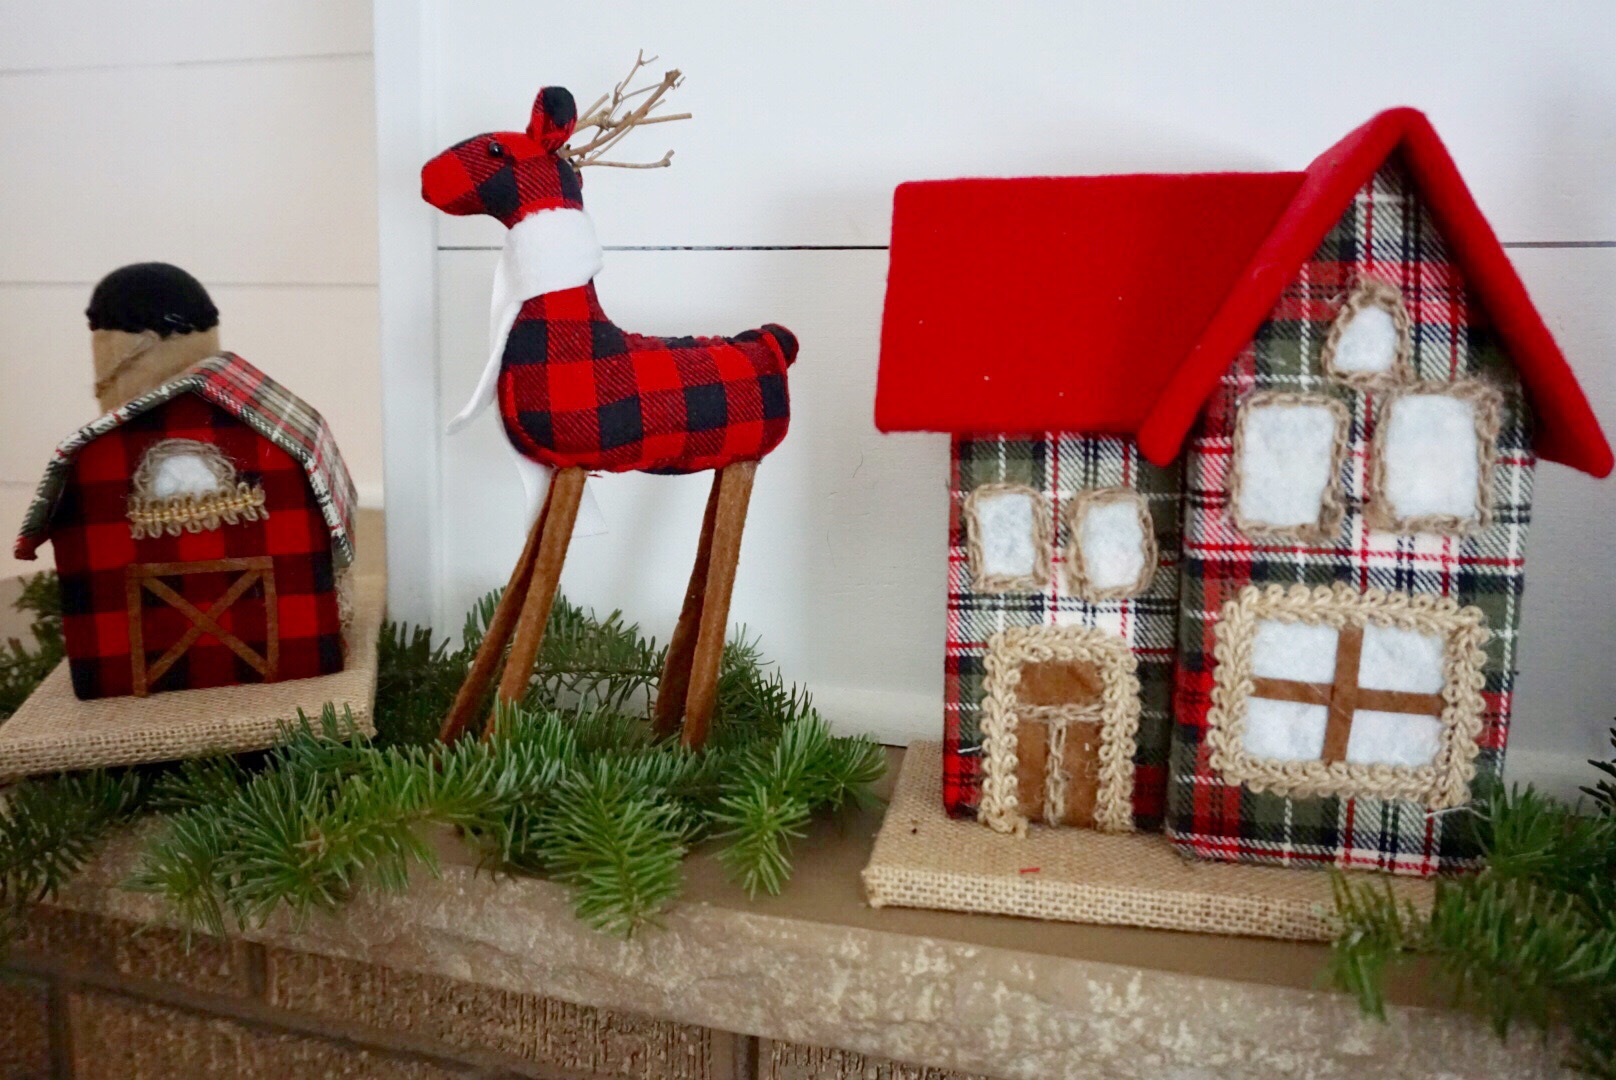 Plaid reindeer and plaid house from Walmart were the perfect add to this classic Christmas mantel.